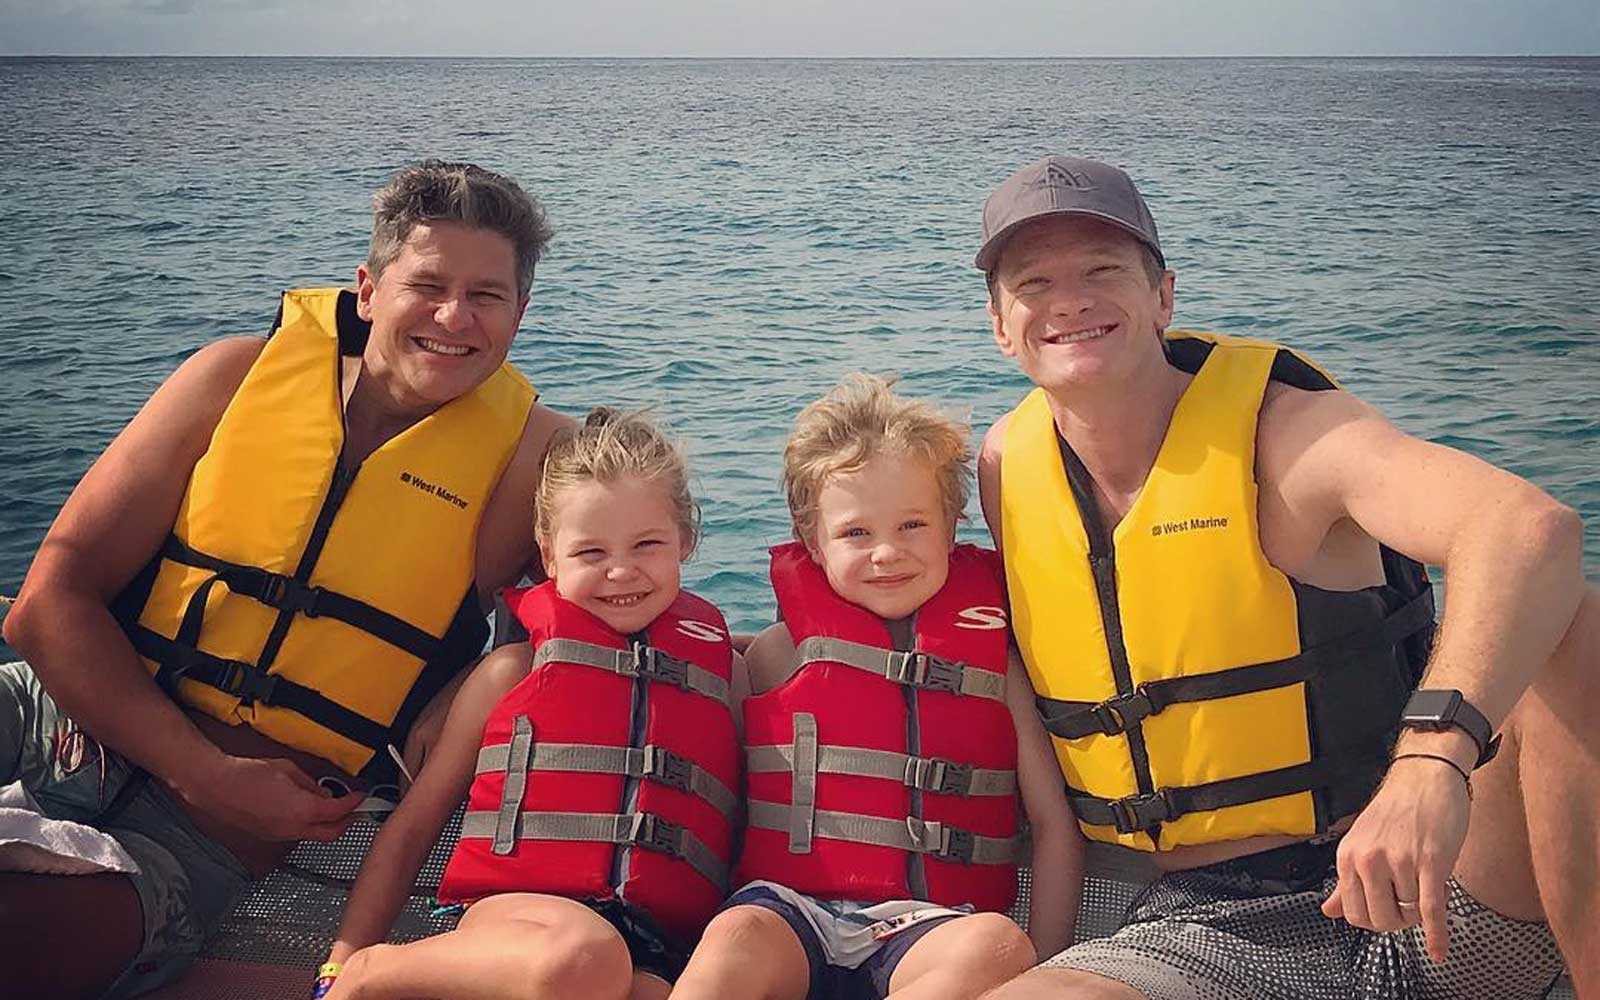 David Burtka, Harper Grace, Gideon Scott, and Neil Patrick Harris